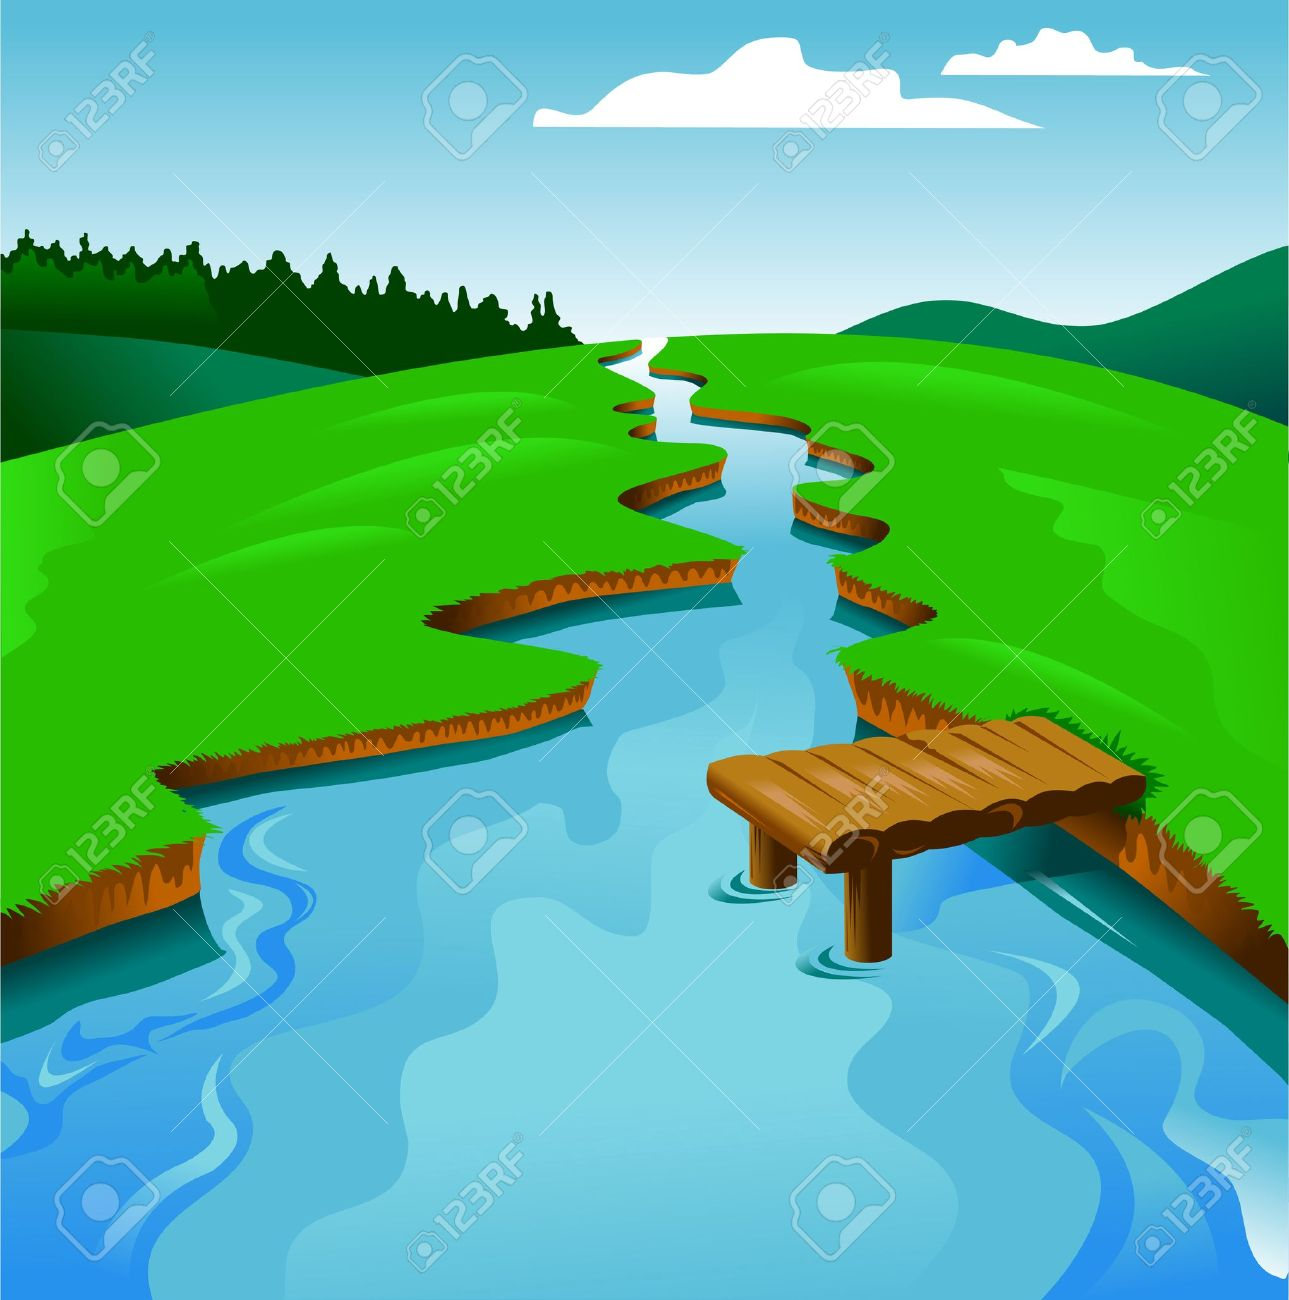 River clipart #6, Download drawings